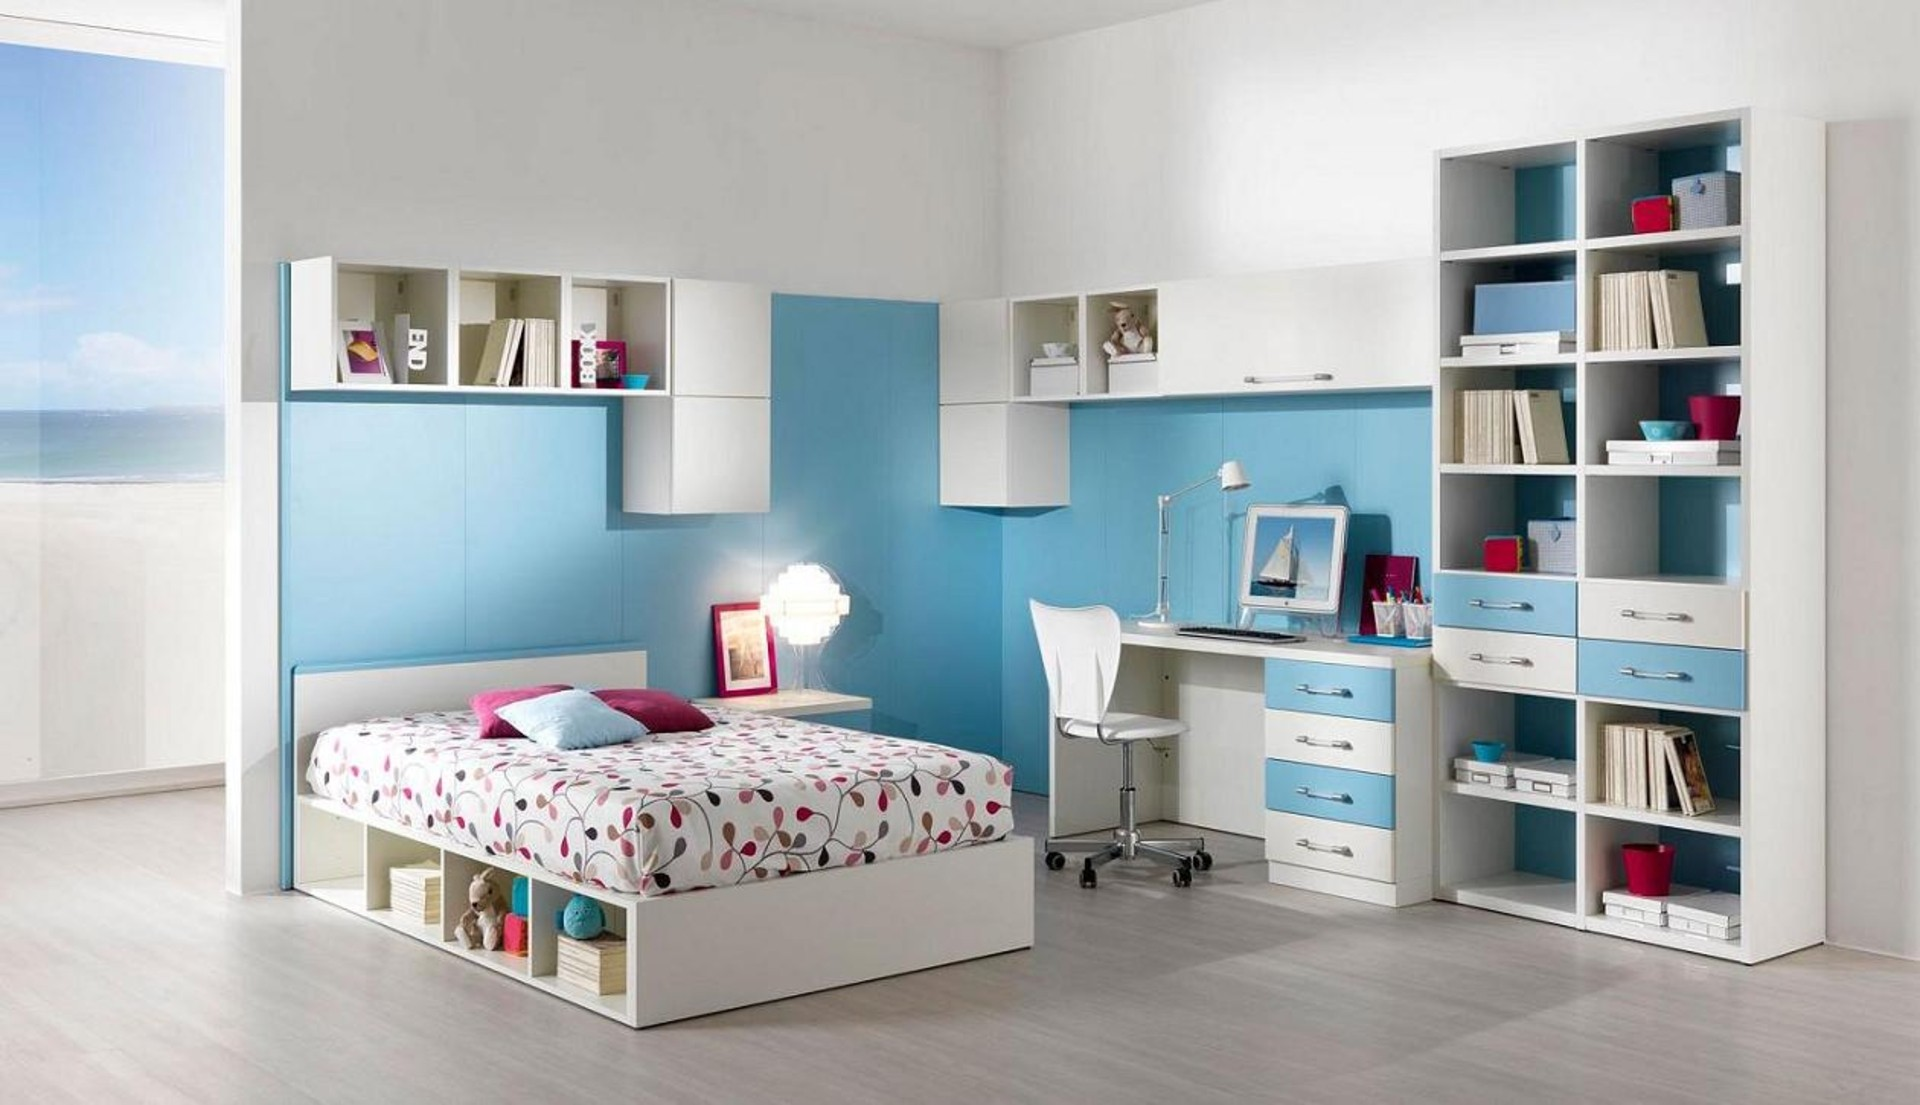 Drawn bookcase teenage Guys Bedroom Ideas Girls Glass